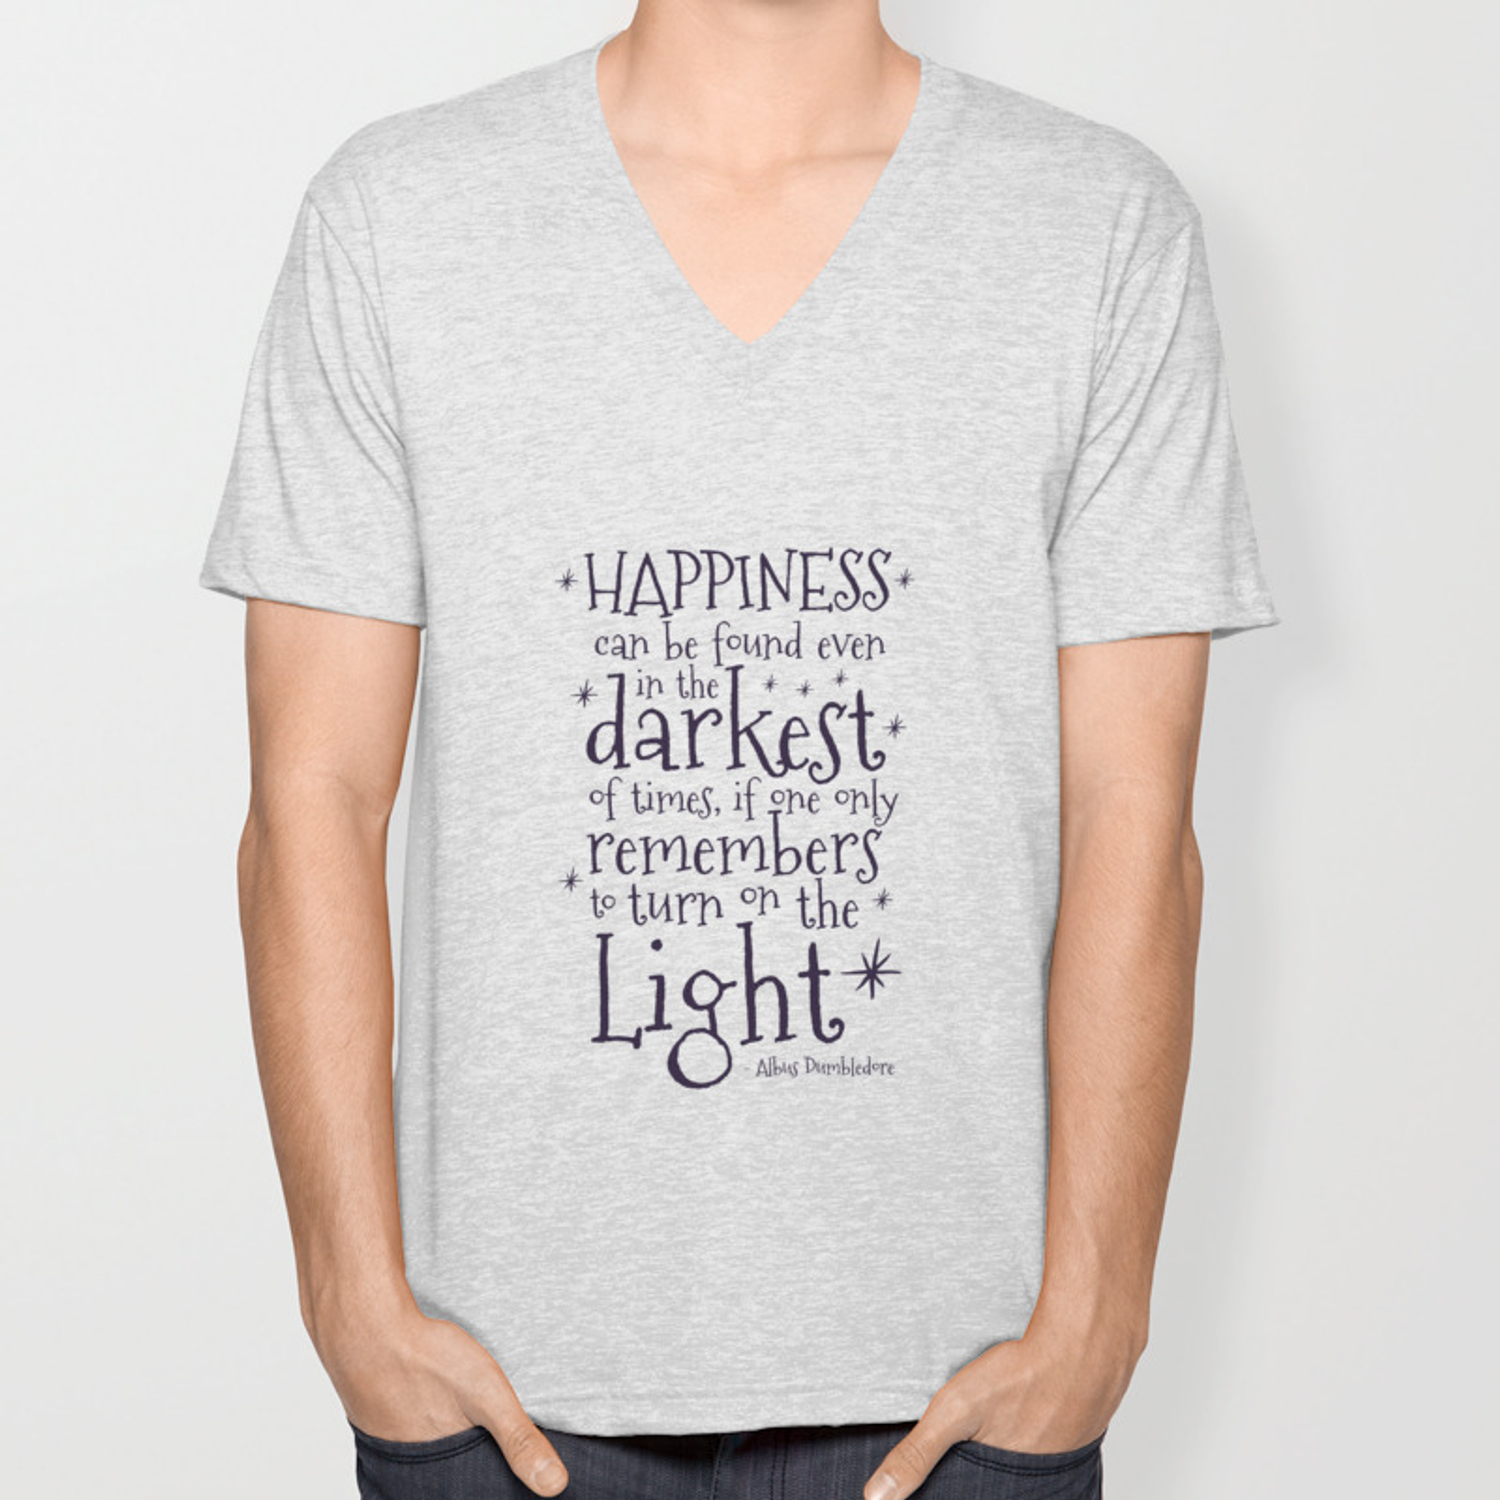 60f23fea8 HAPPINESS CAN BE FOUND EVEN IN THE DARKEST OF TIMES - DUMBLEDORE QUOTE  Unisex V-Neck by danielaenriquez | Society6